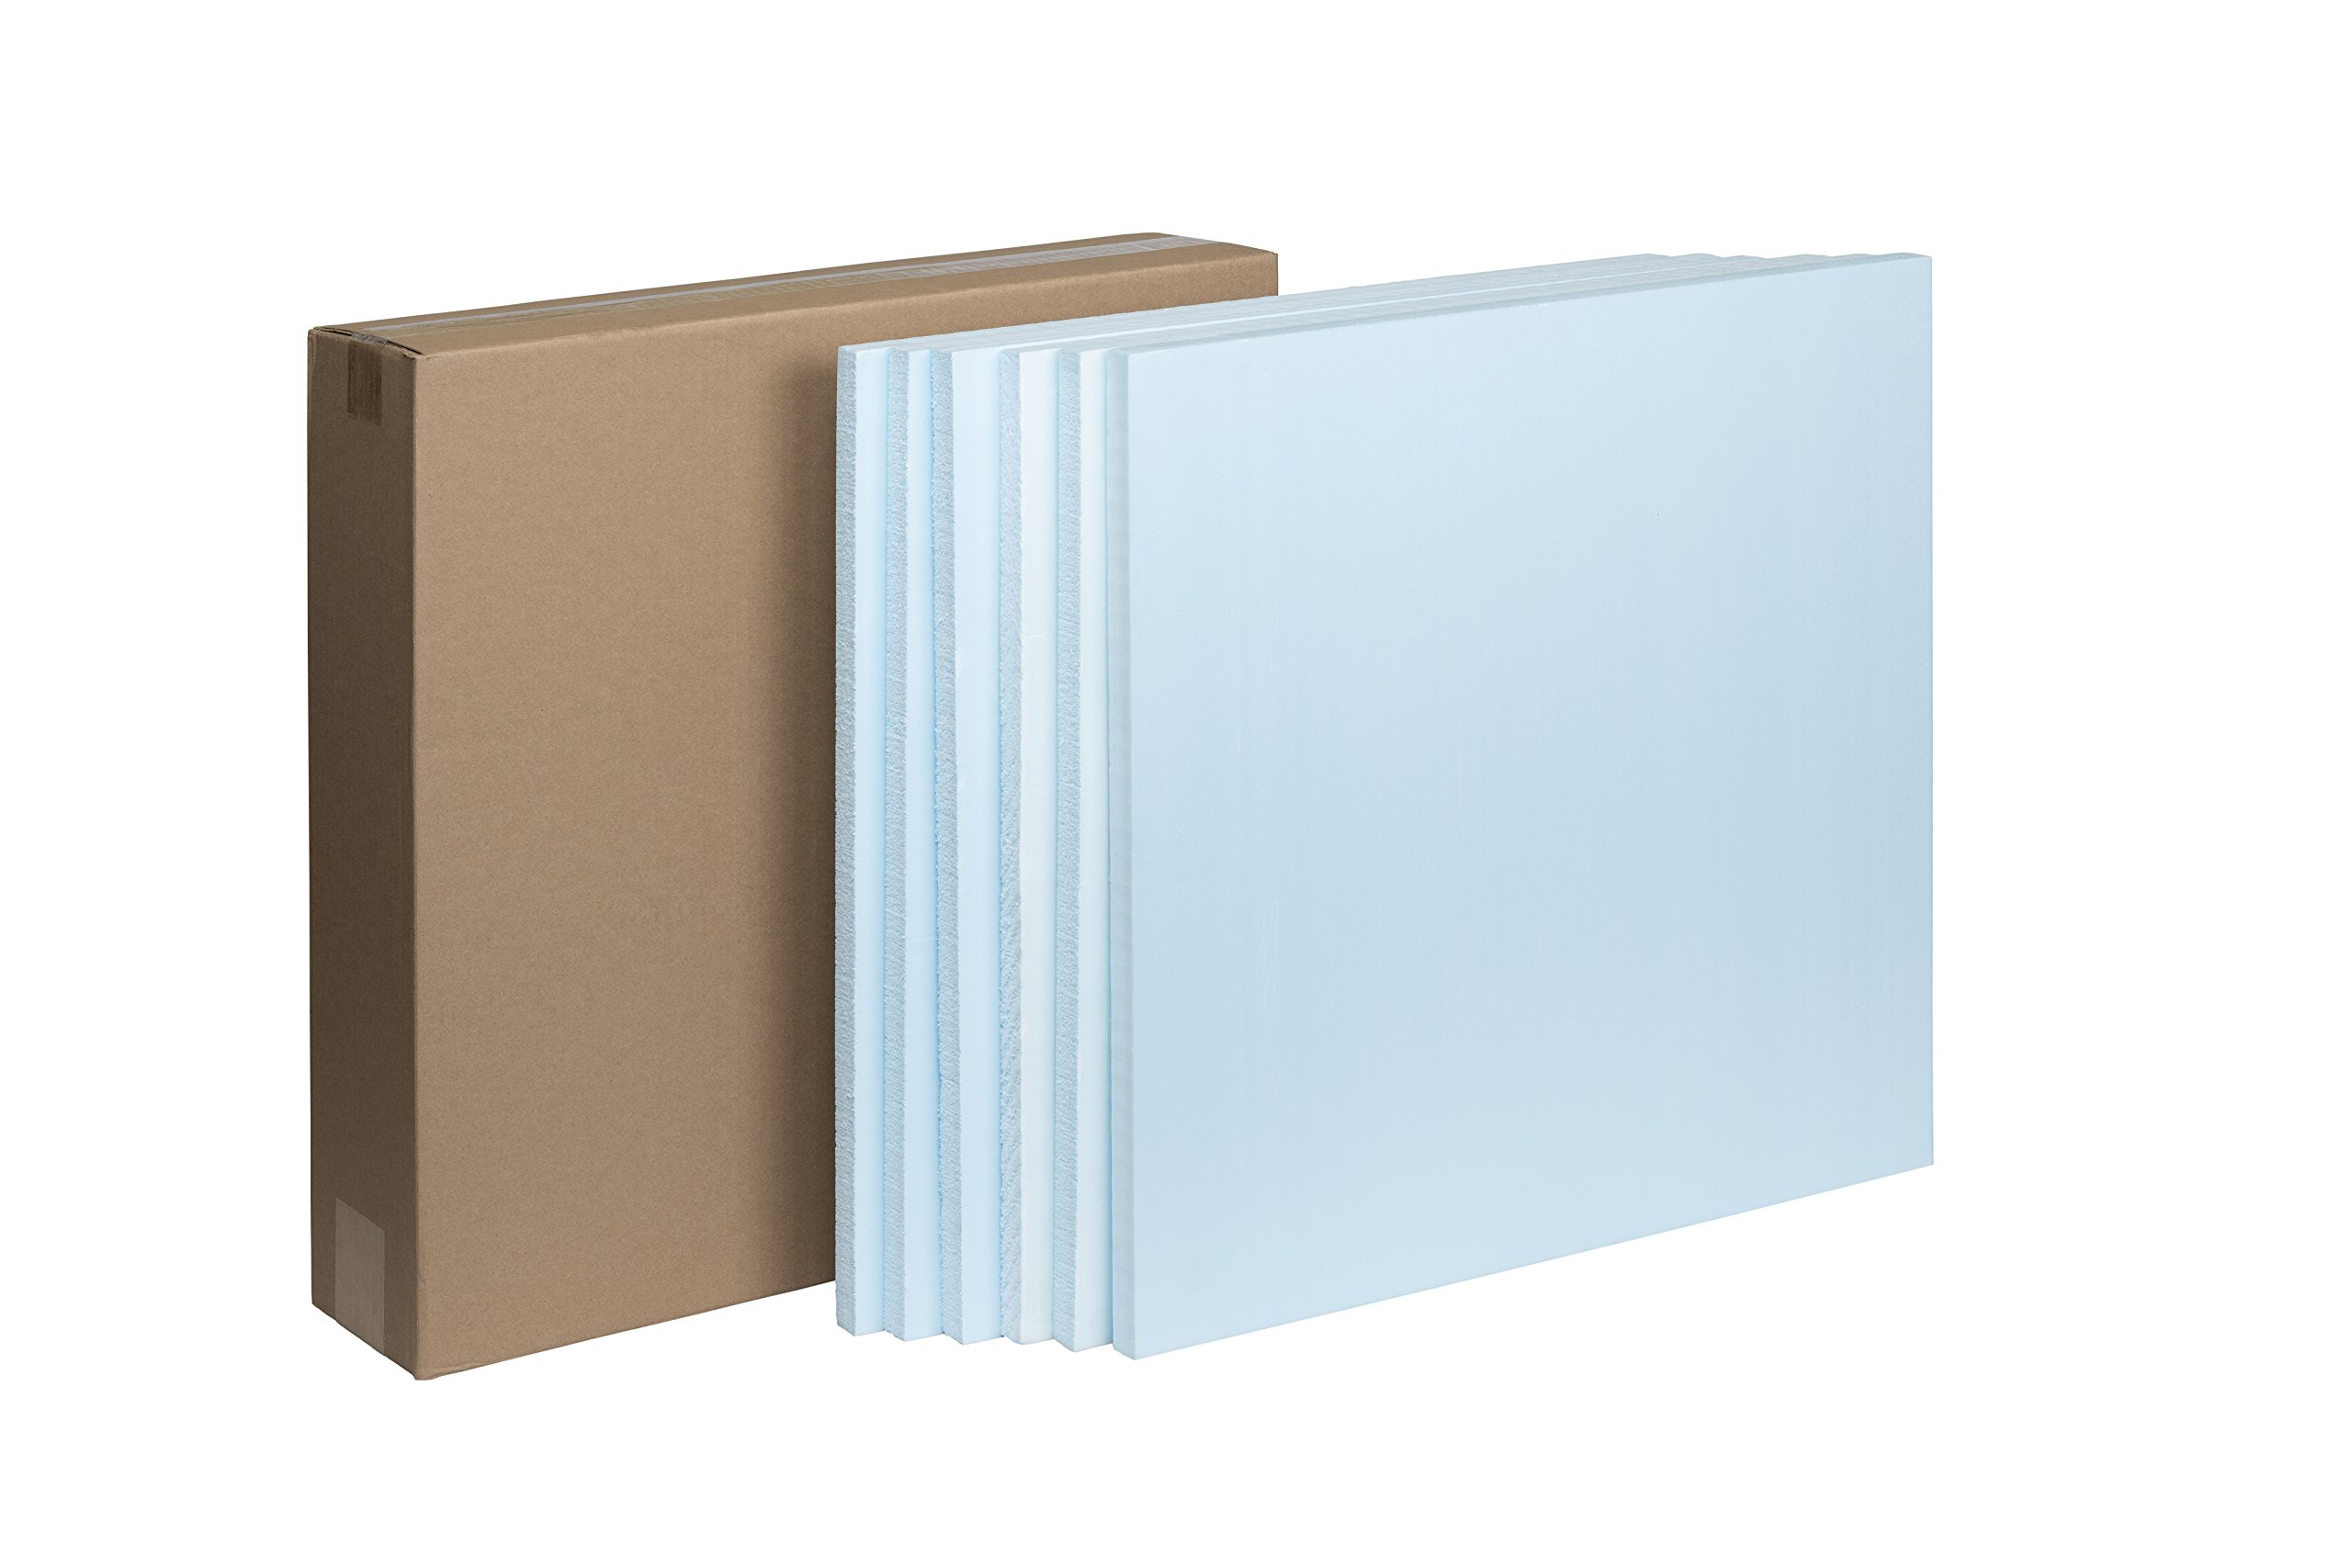 STYROFOAM 99106444 2x2 Project Panels (Pack of 6), Blue